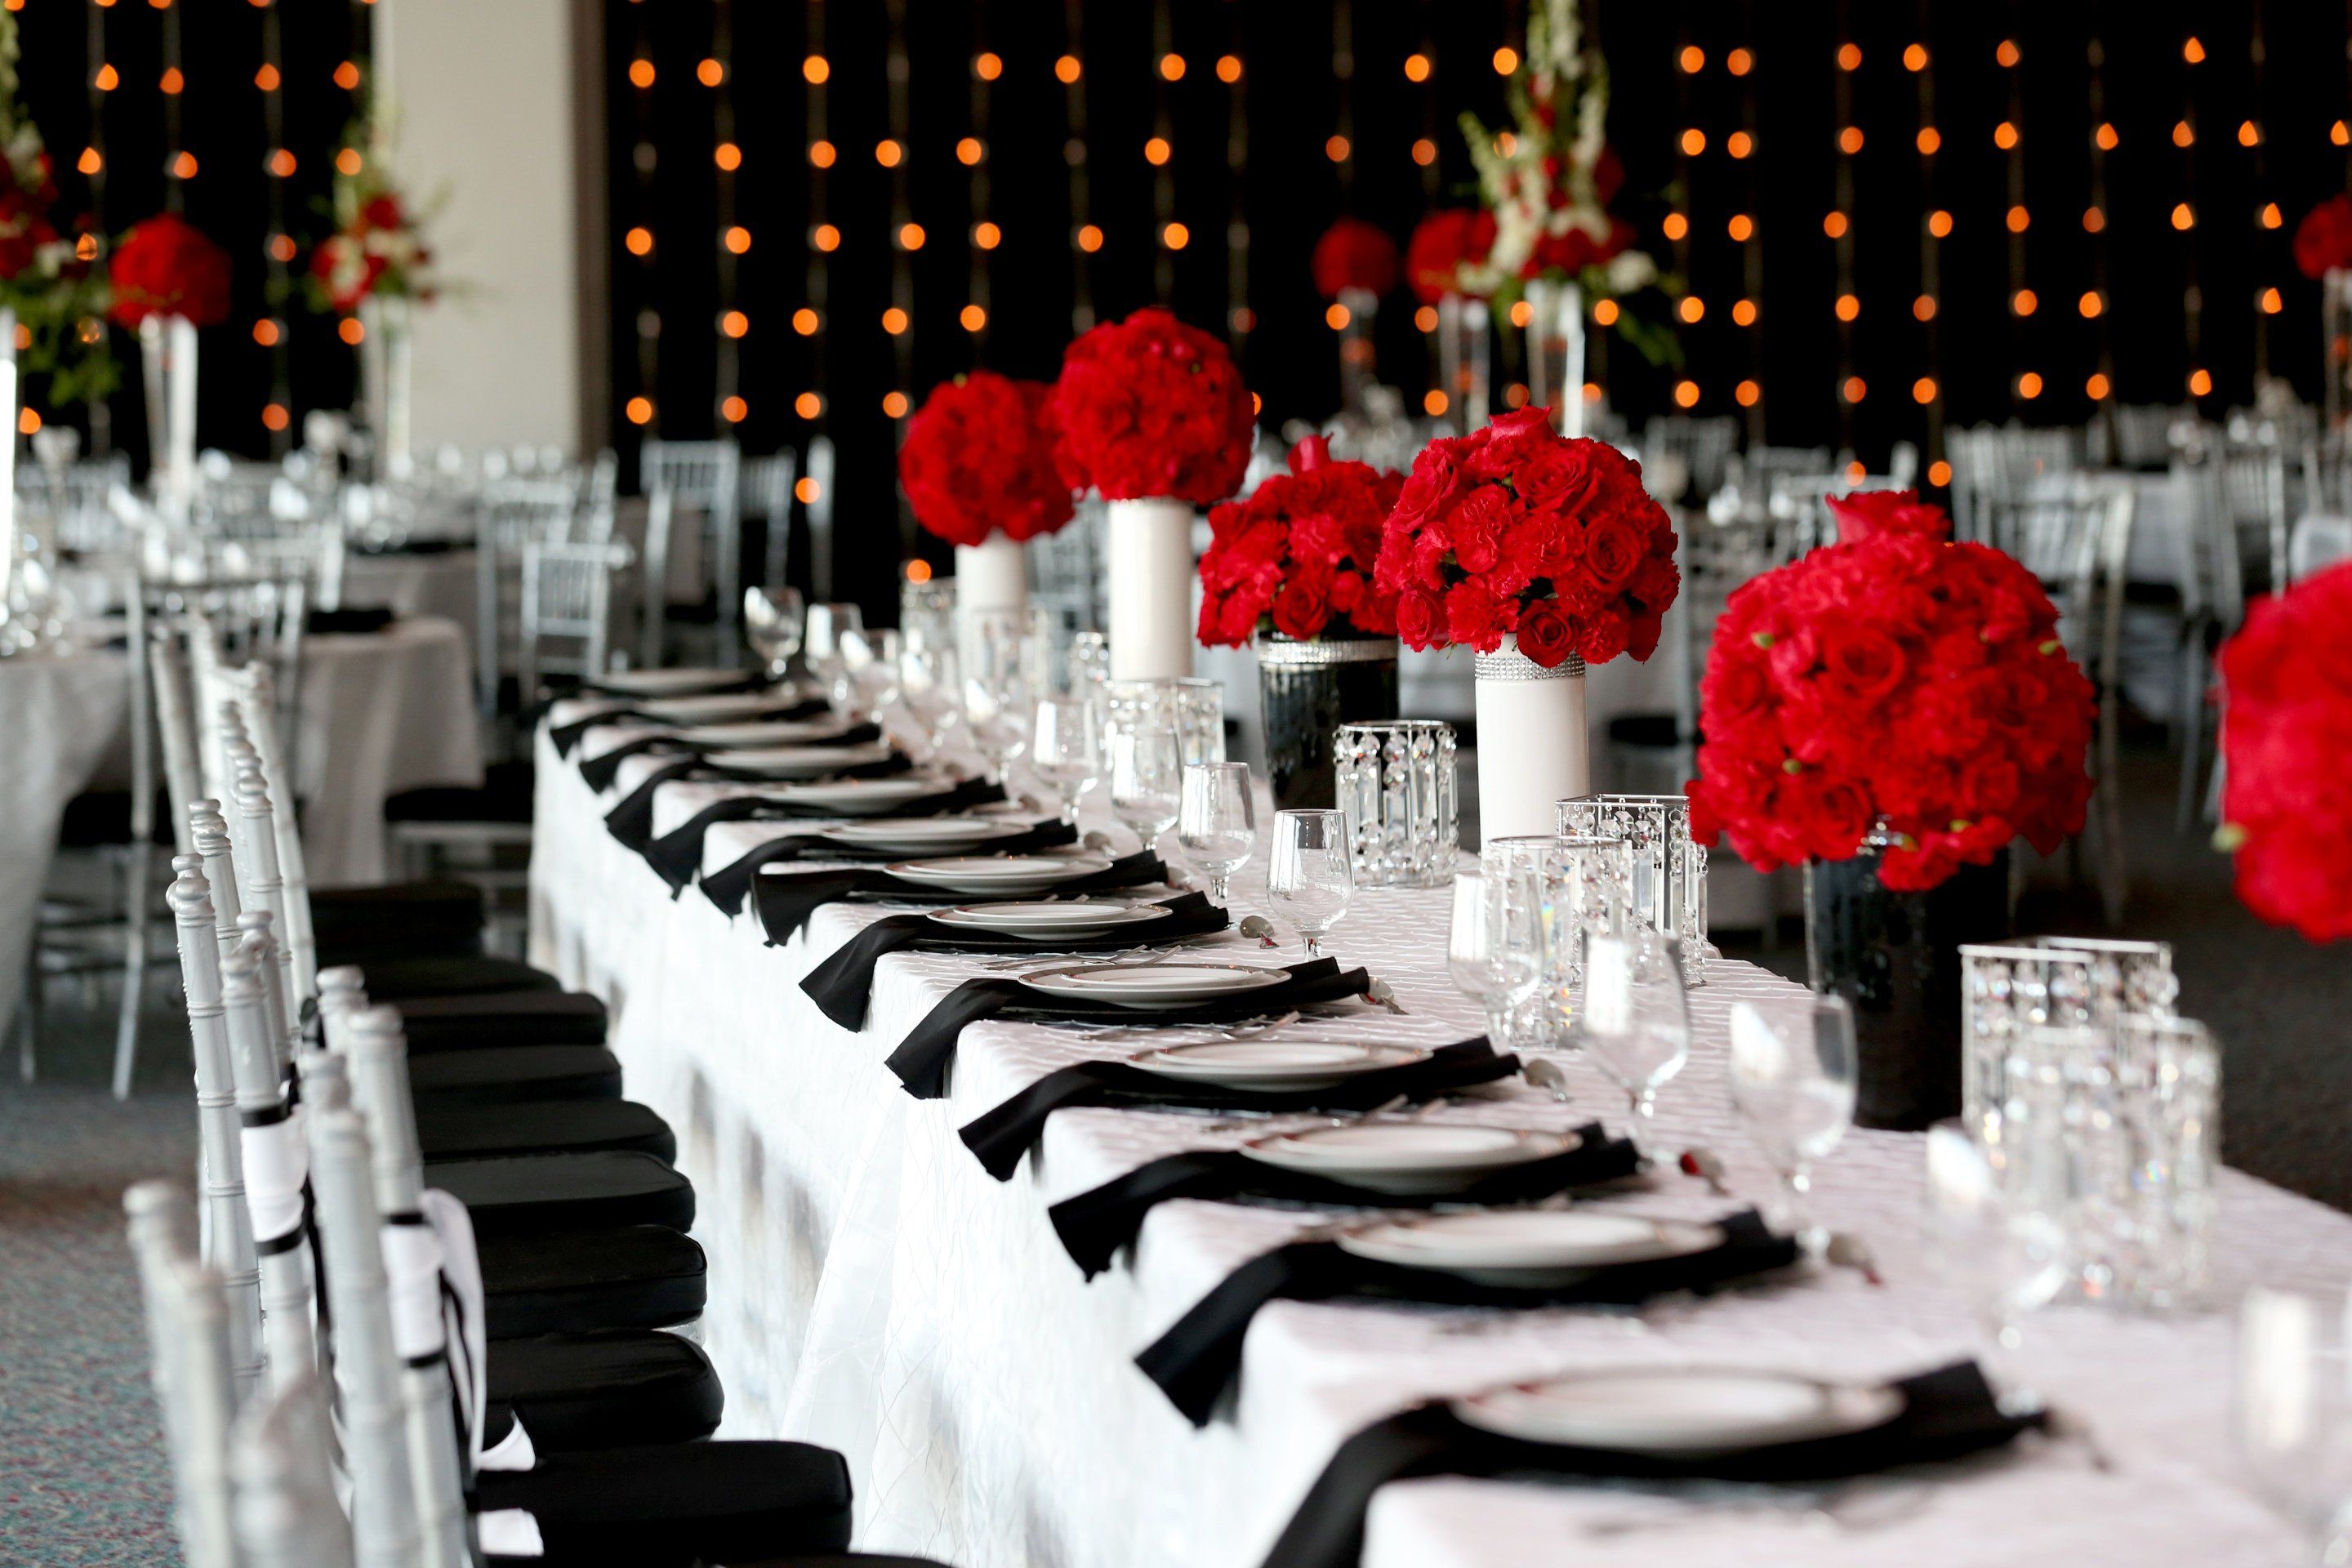 A Simple Black And White Color Palette With Red Accents Defined Shapes Brought Modern